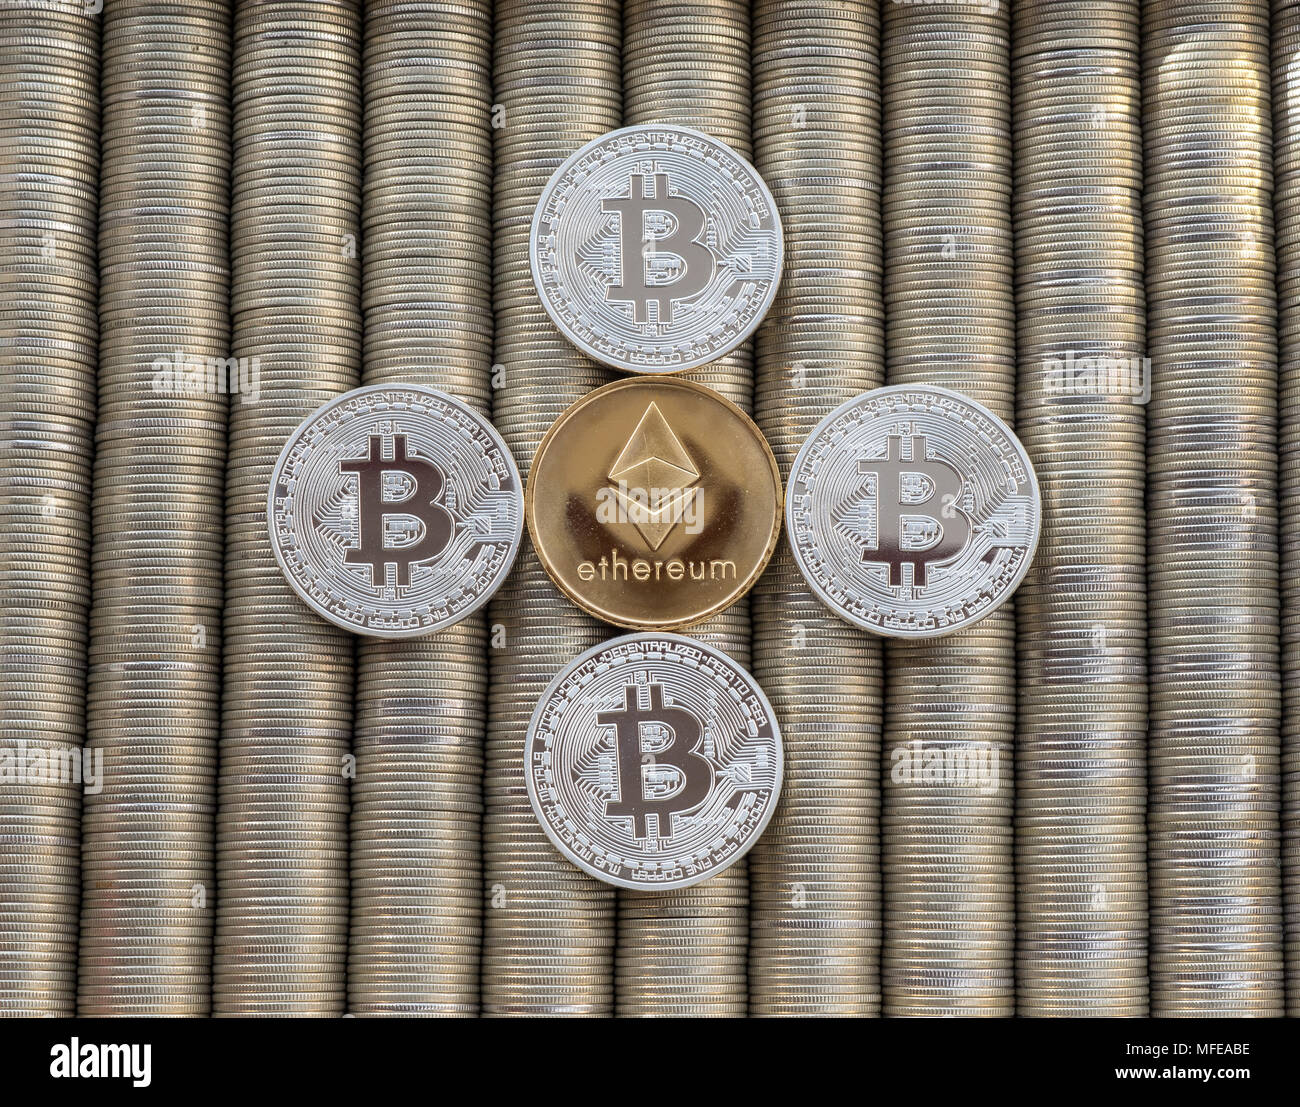 Silver Crypto coins bitcoin BTC Ethereum ETH. Metal coins are laid out in background to each other, close-up view from top, crypto currency exchange o - Stock Image